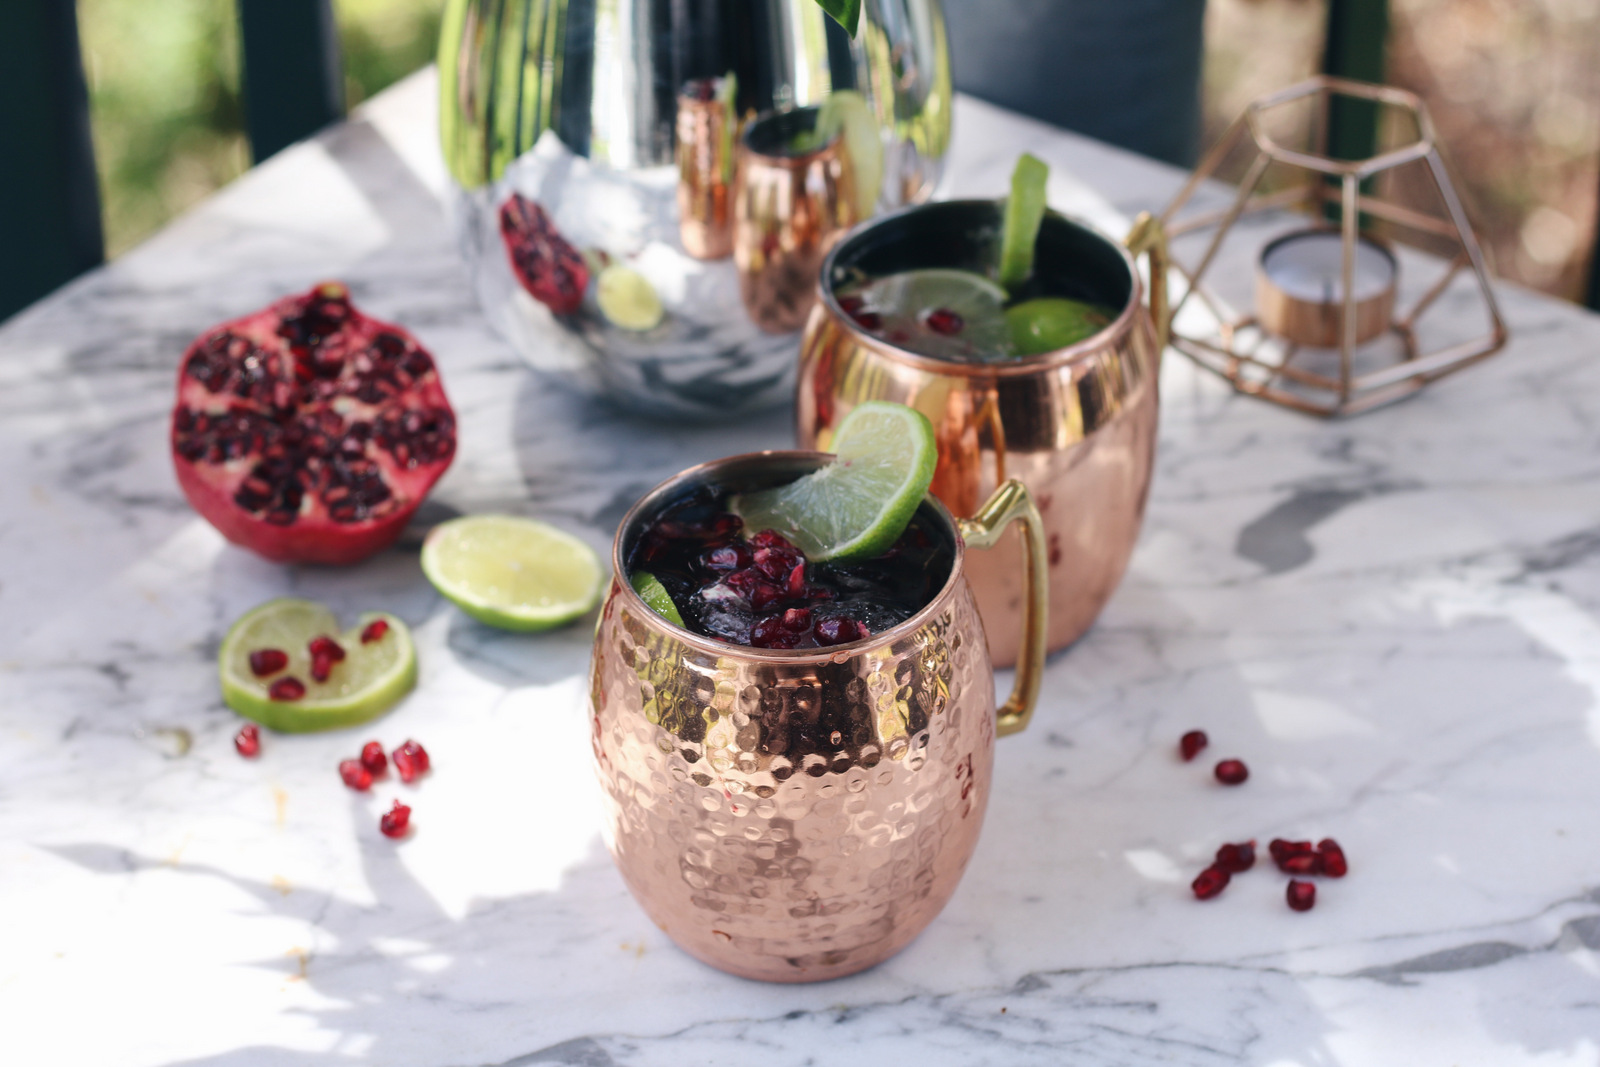 moscow-mule-mrs-brightside-rosavivi-kooperation-kamoagne-absolut-vodka-rezept-recipe-lifestyle-food-rosavivi1